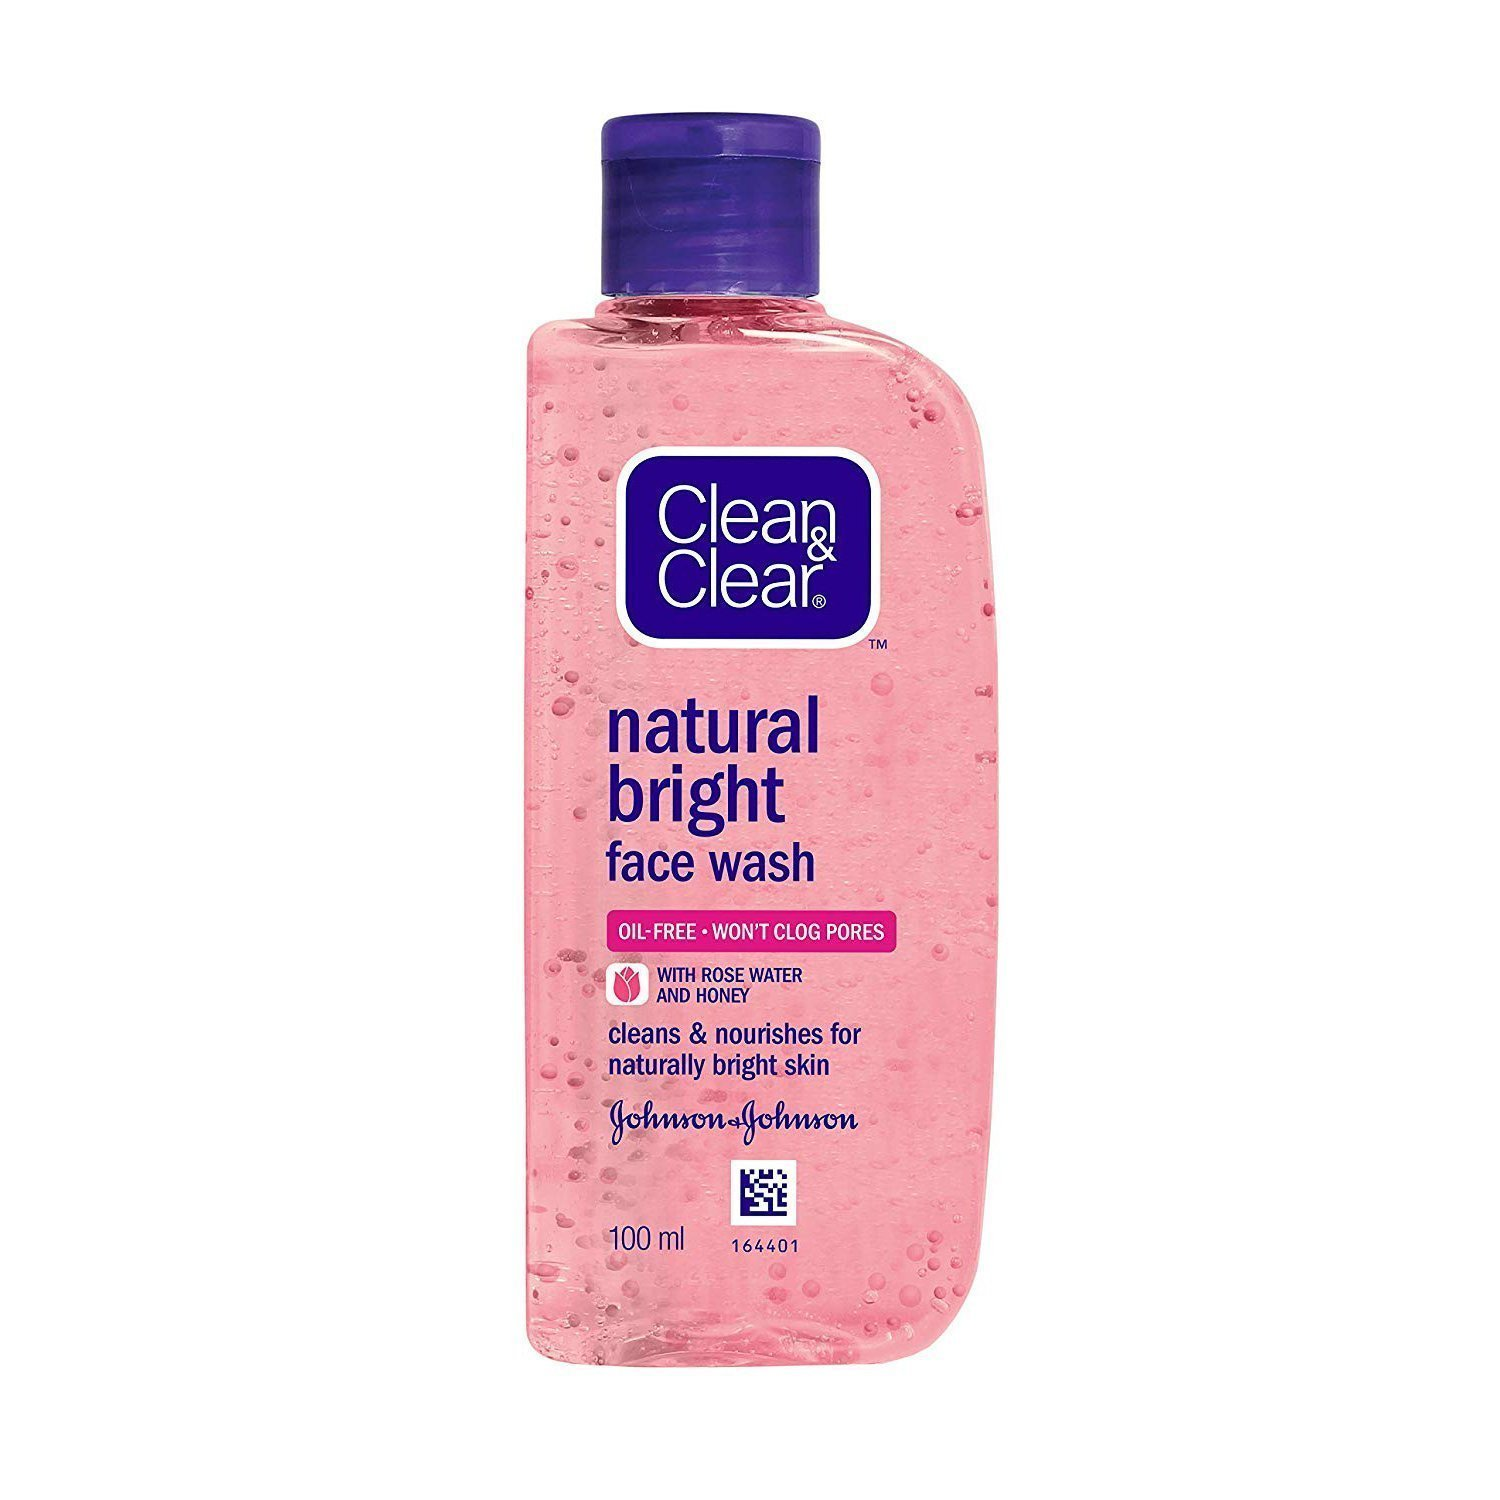 Clean & Clear Natural Bright Facewash Rose Water With Honey, 100ml